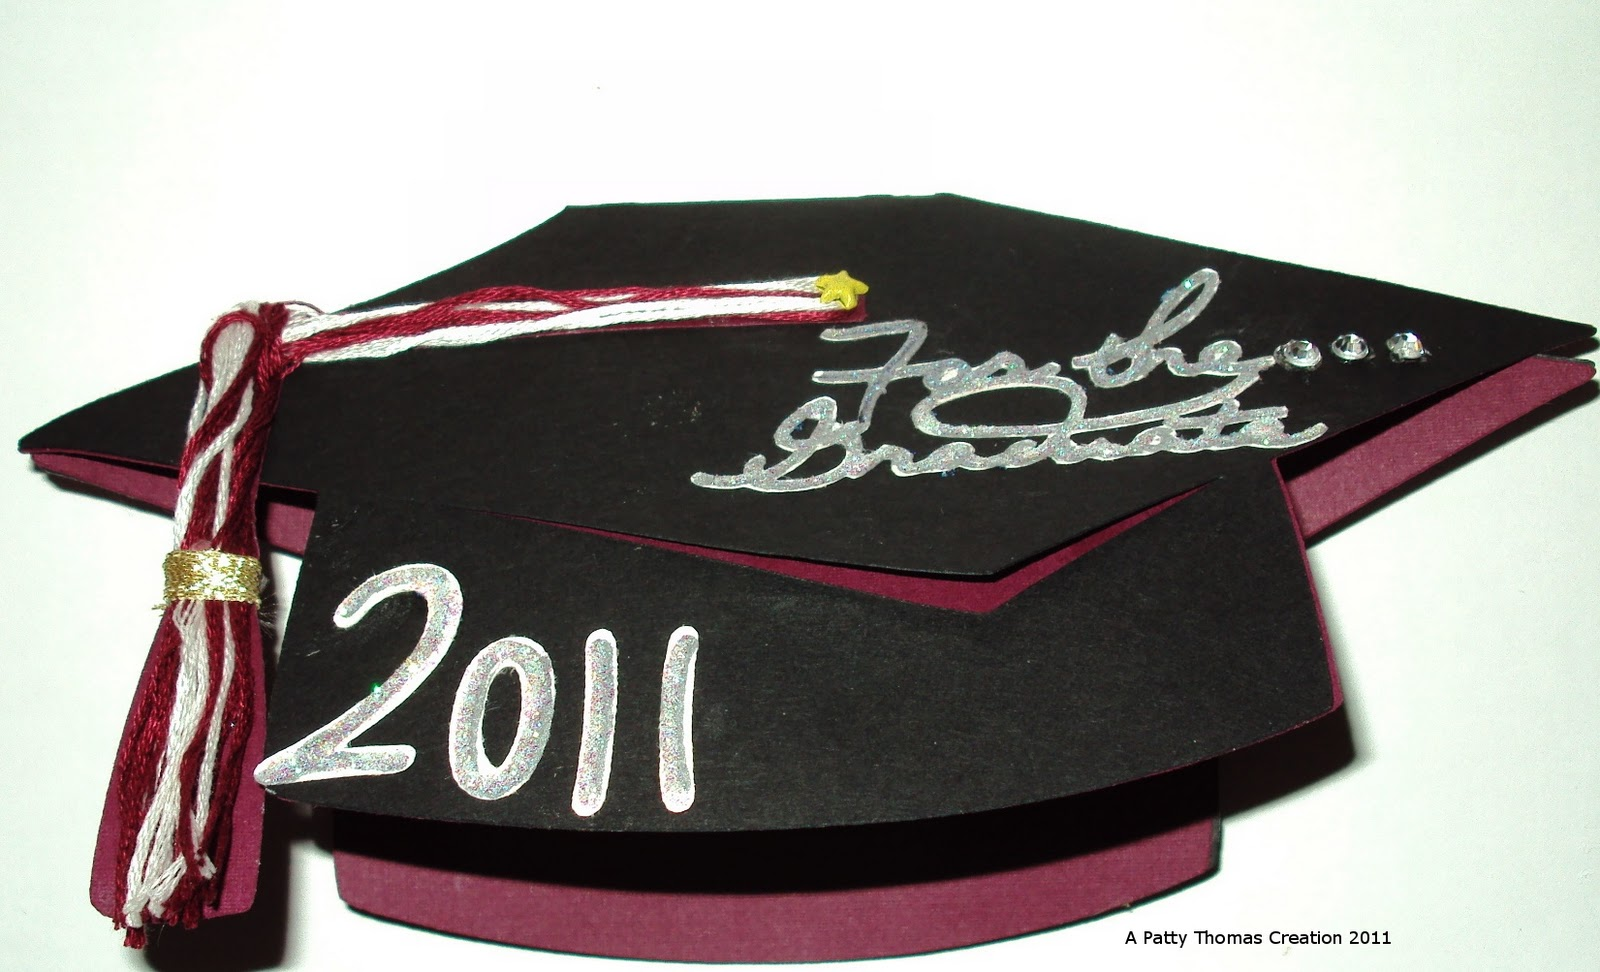 patty's handmade cards and crafts graduation card using